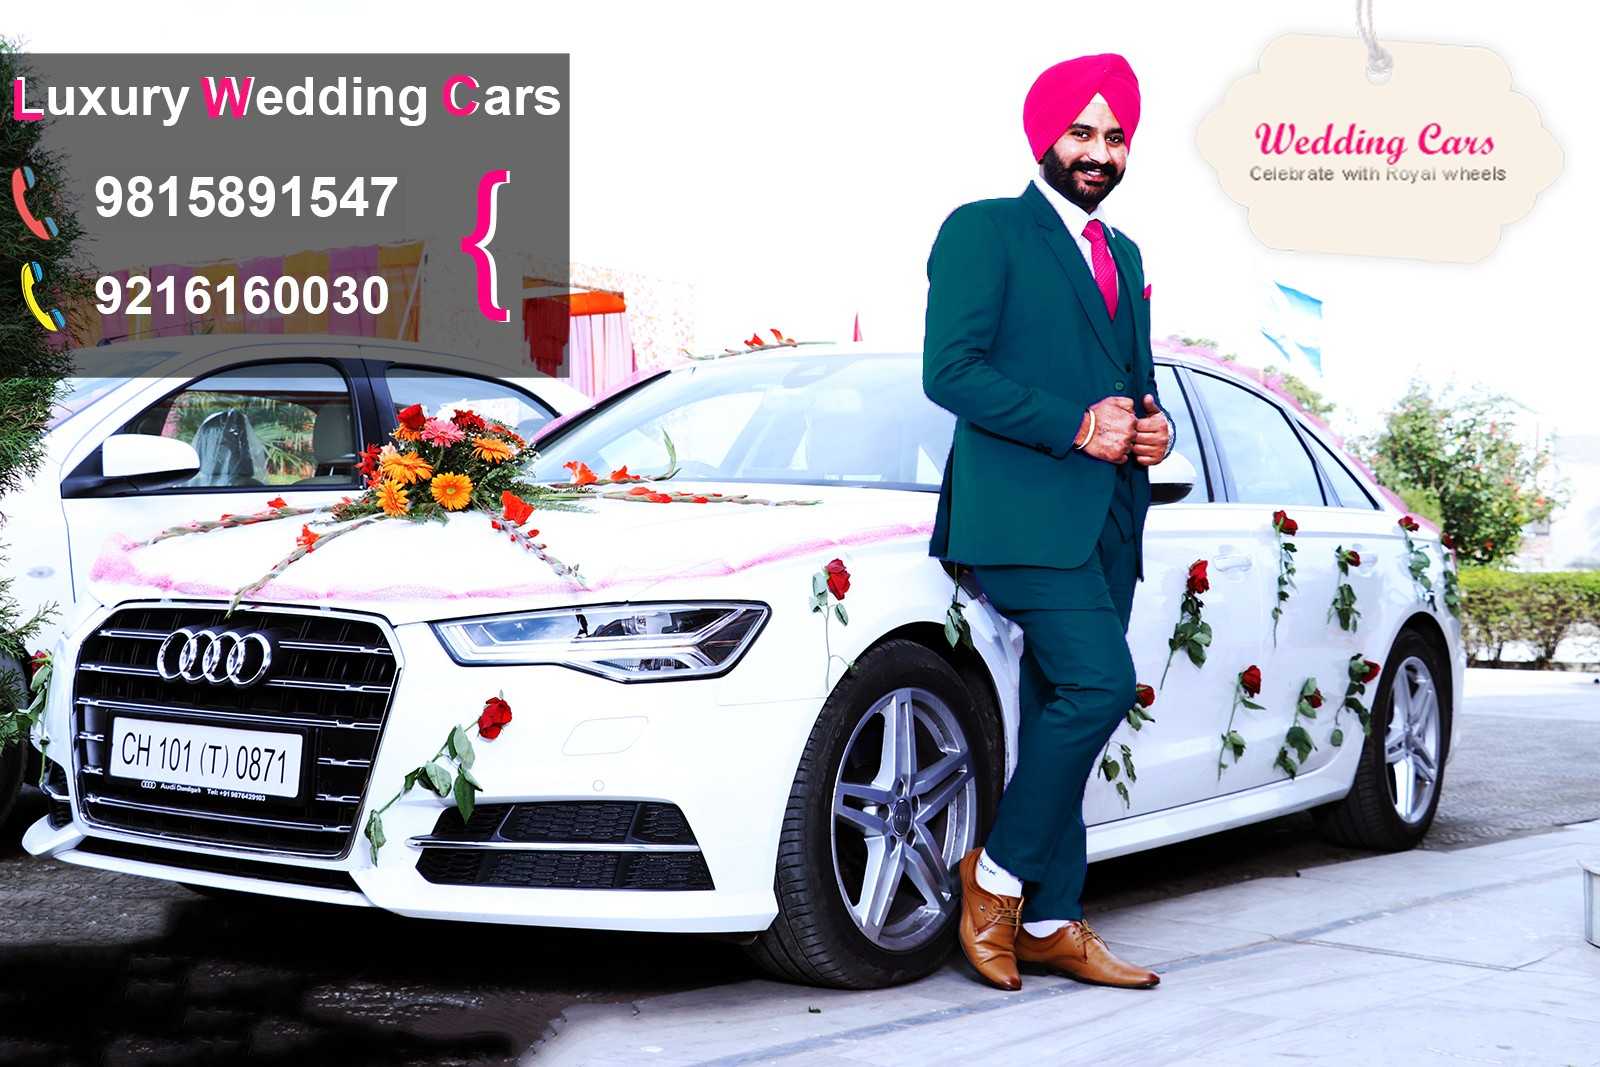 Wedding car in Ludhiana, Hire Luxury Wedding cars in Ludhiana, best wedding car